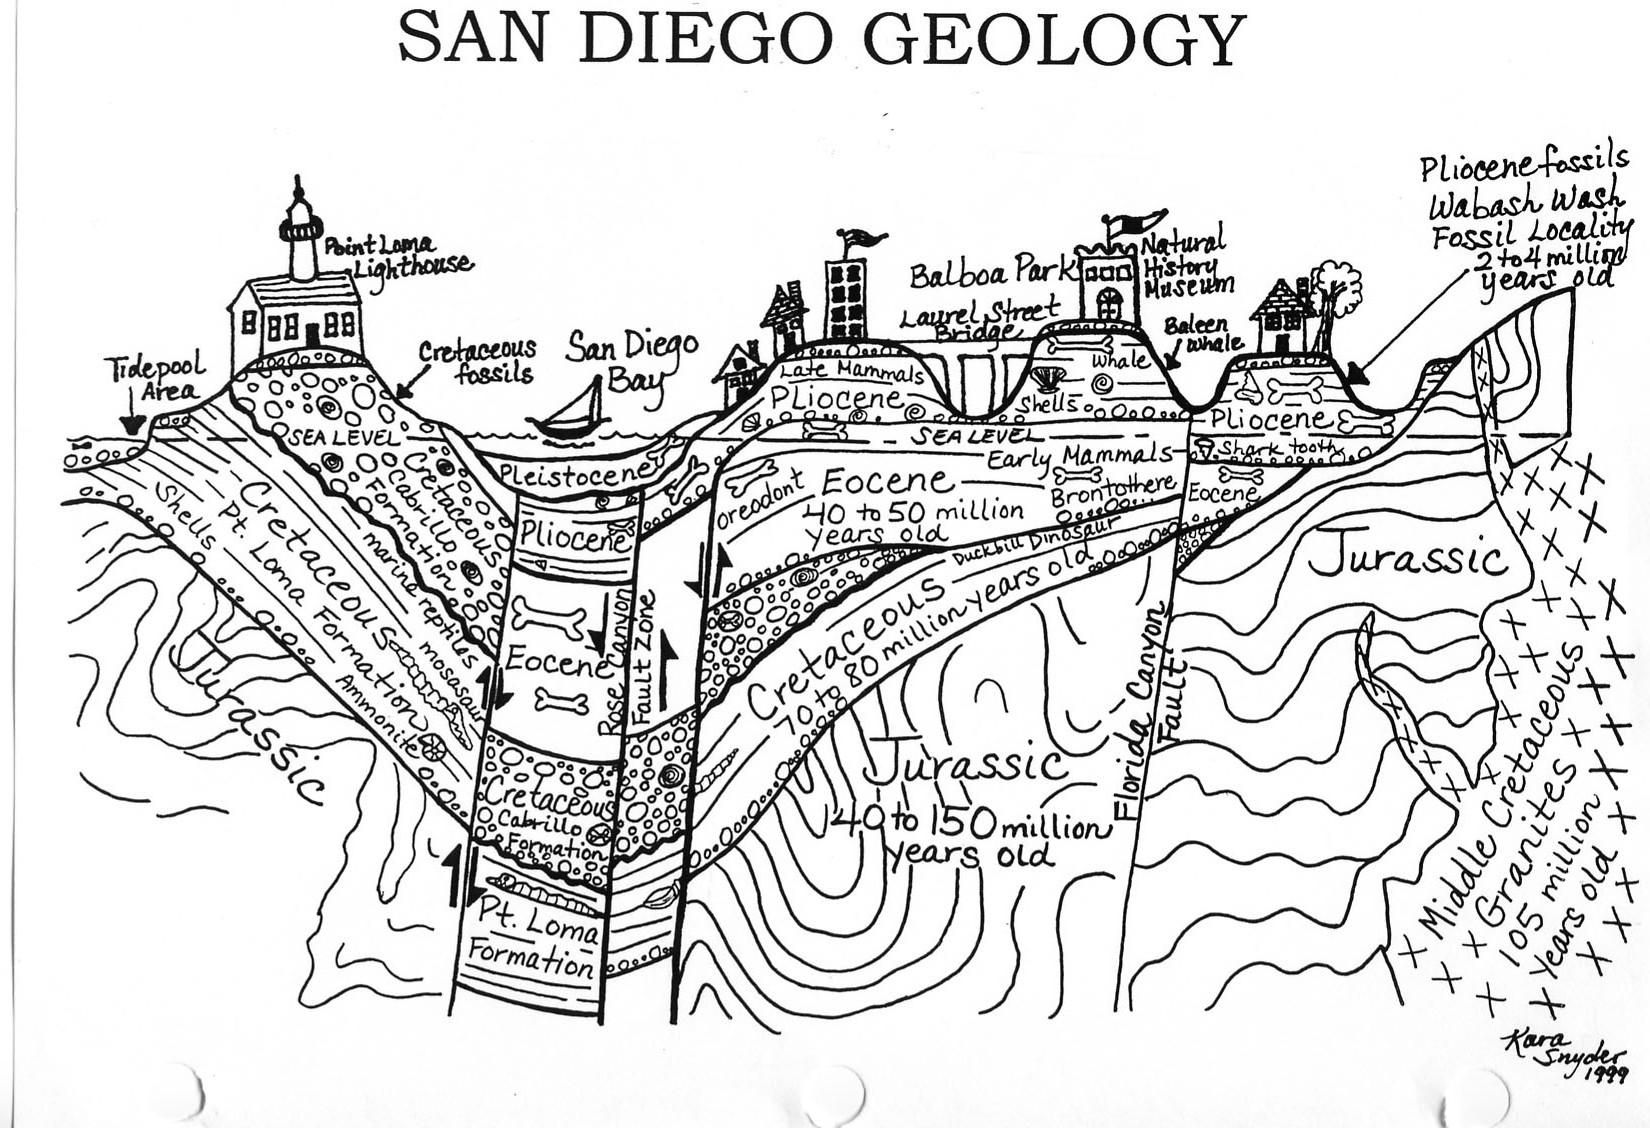 Cross Section of San Diego Geology